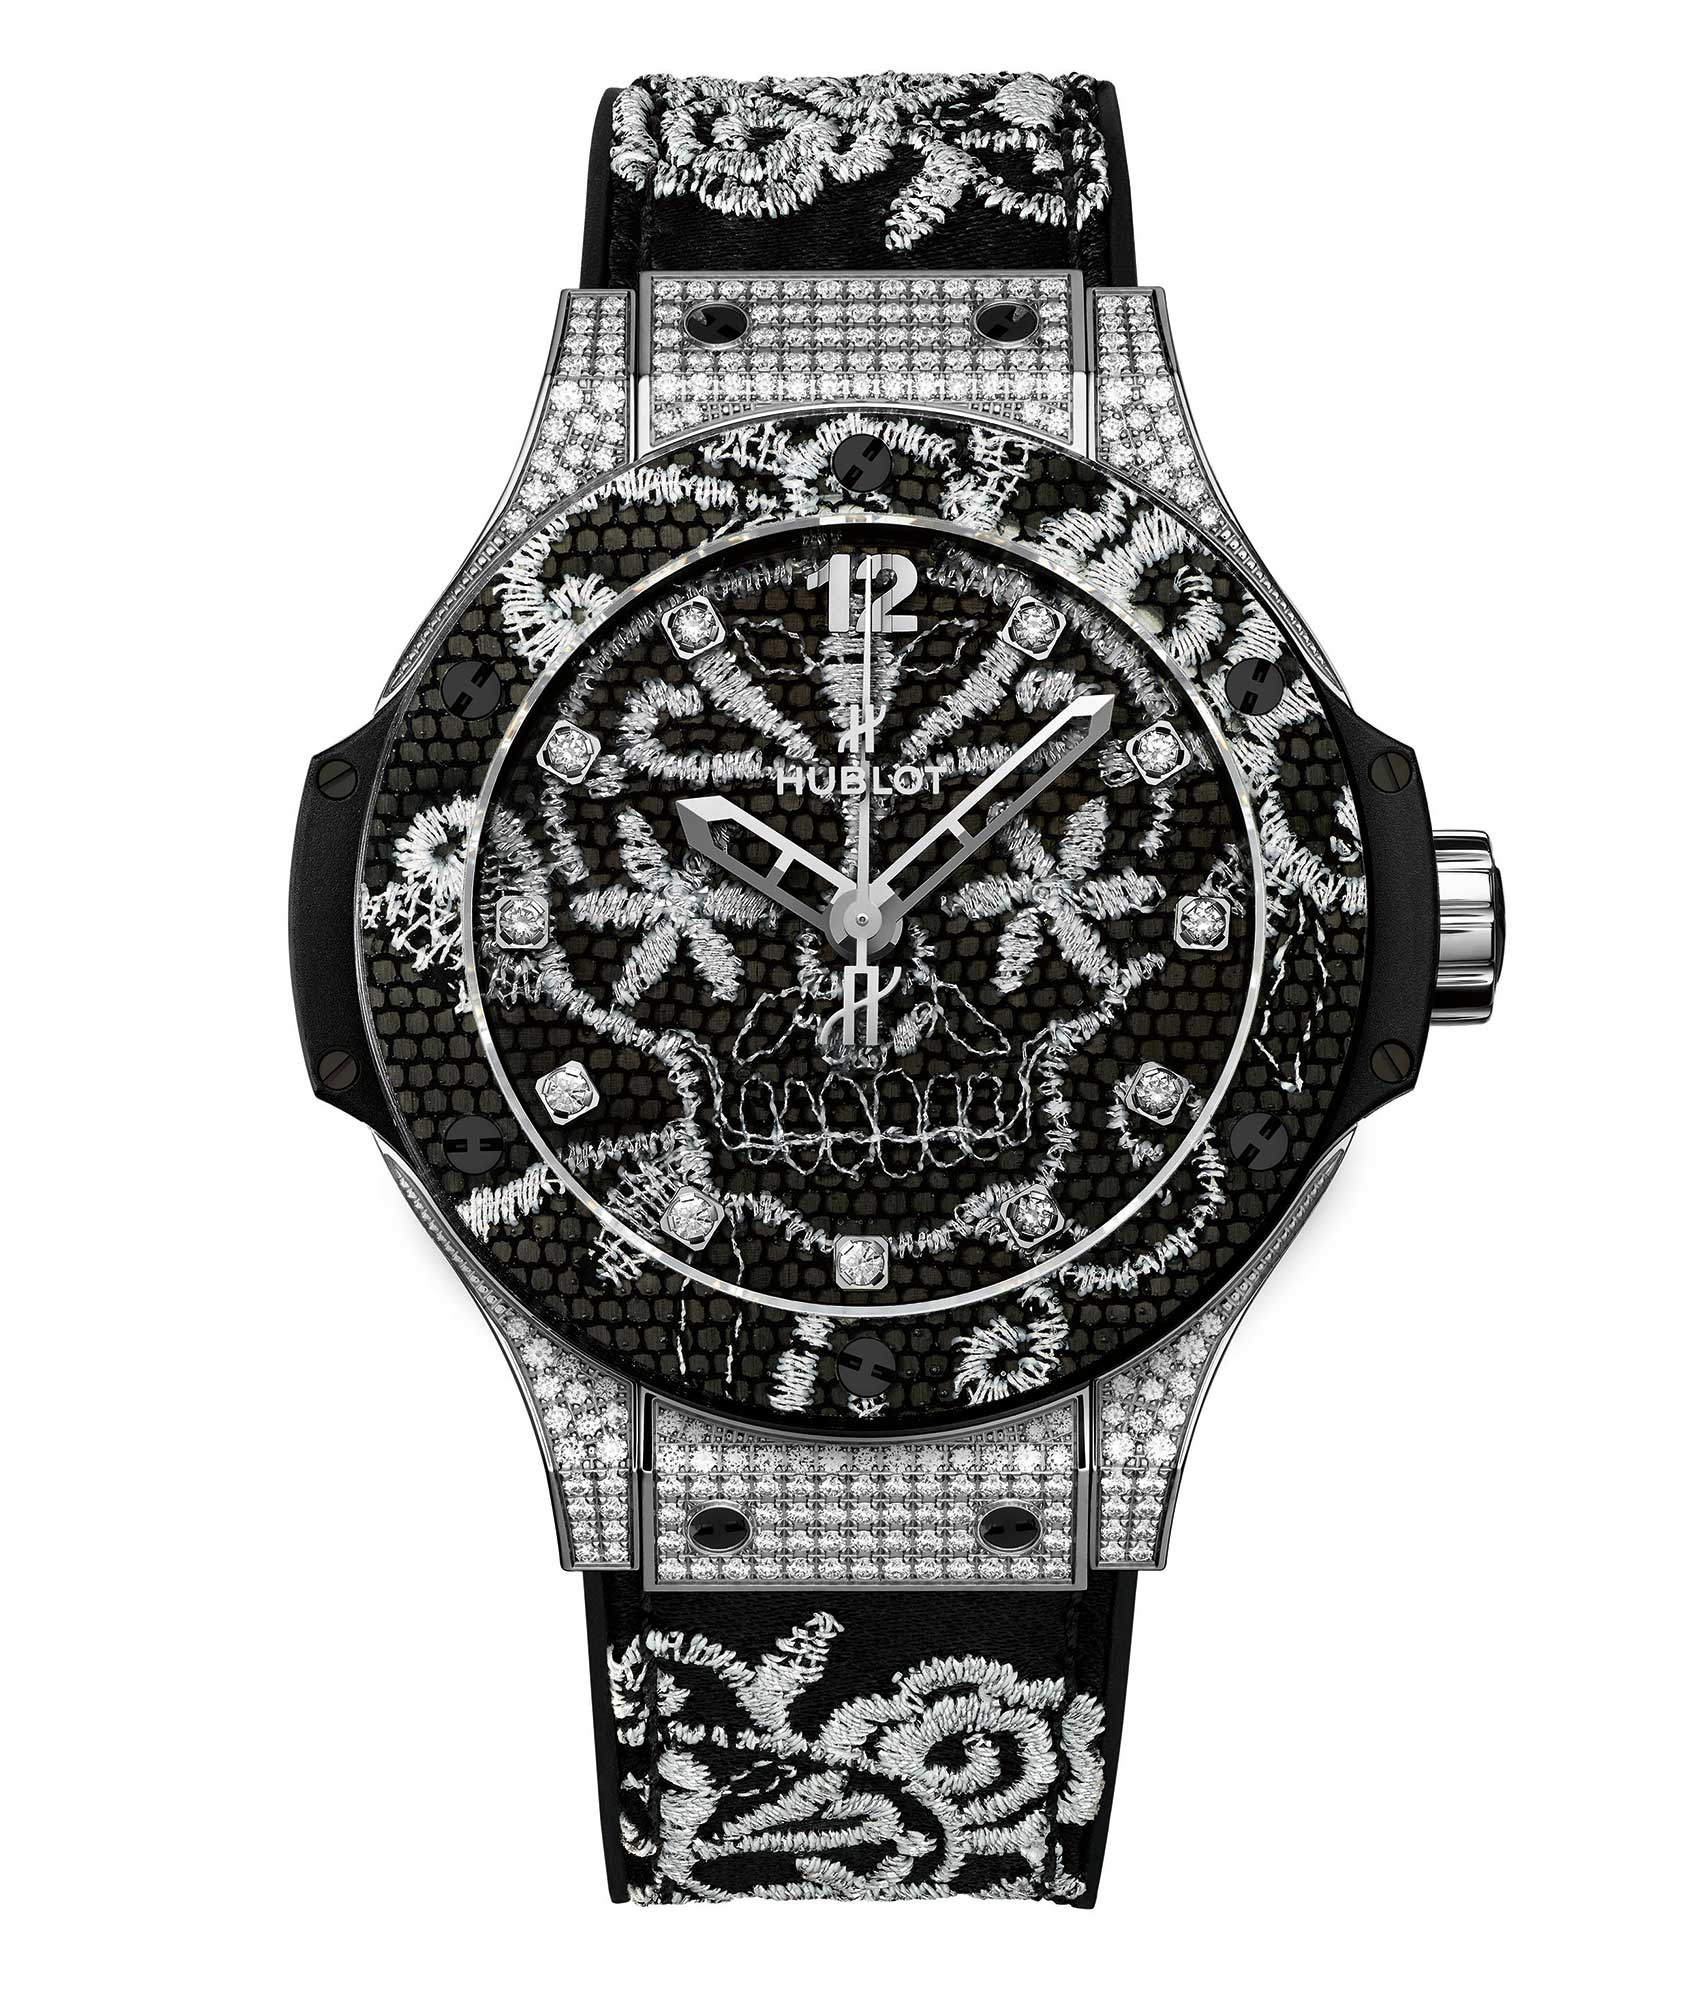 Hublot-big-bang-broderie-1